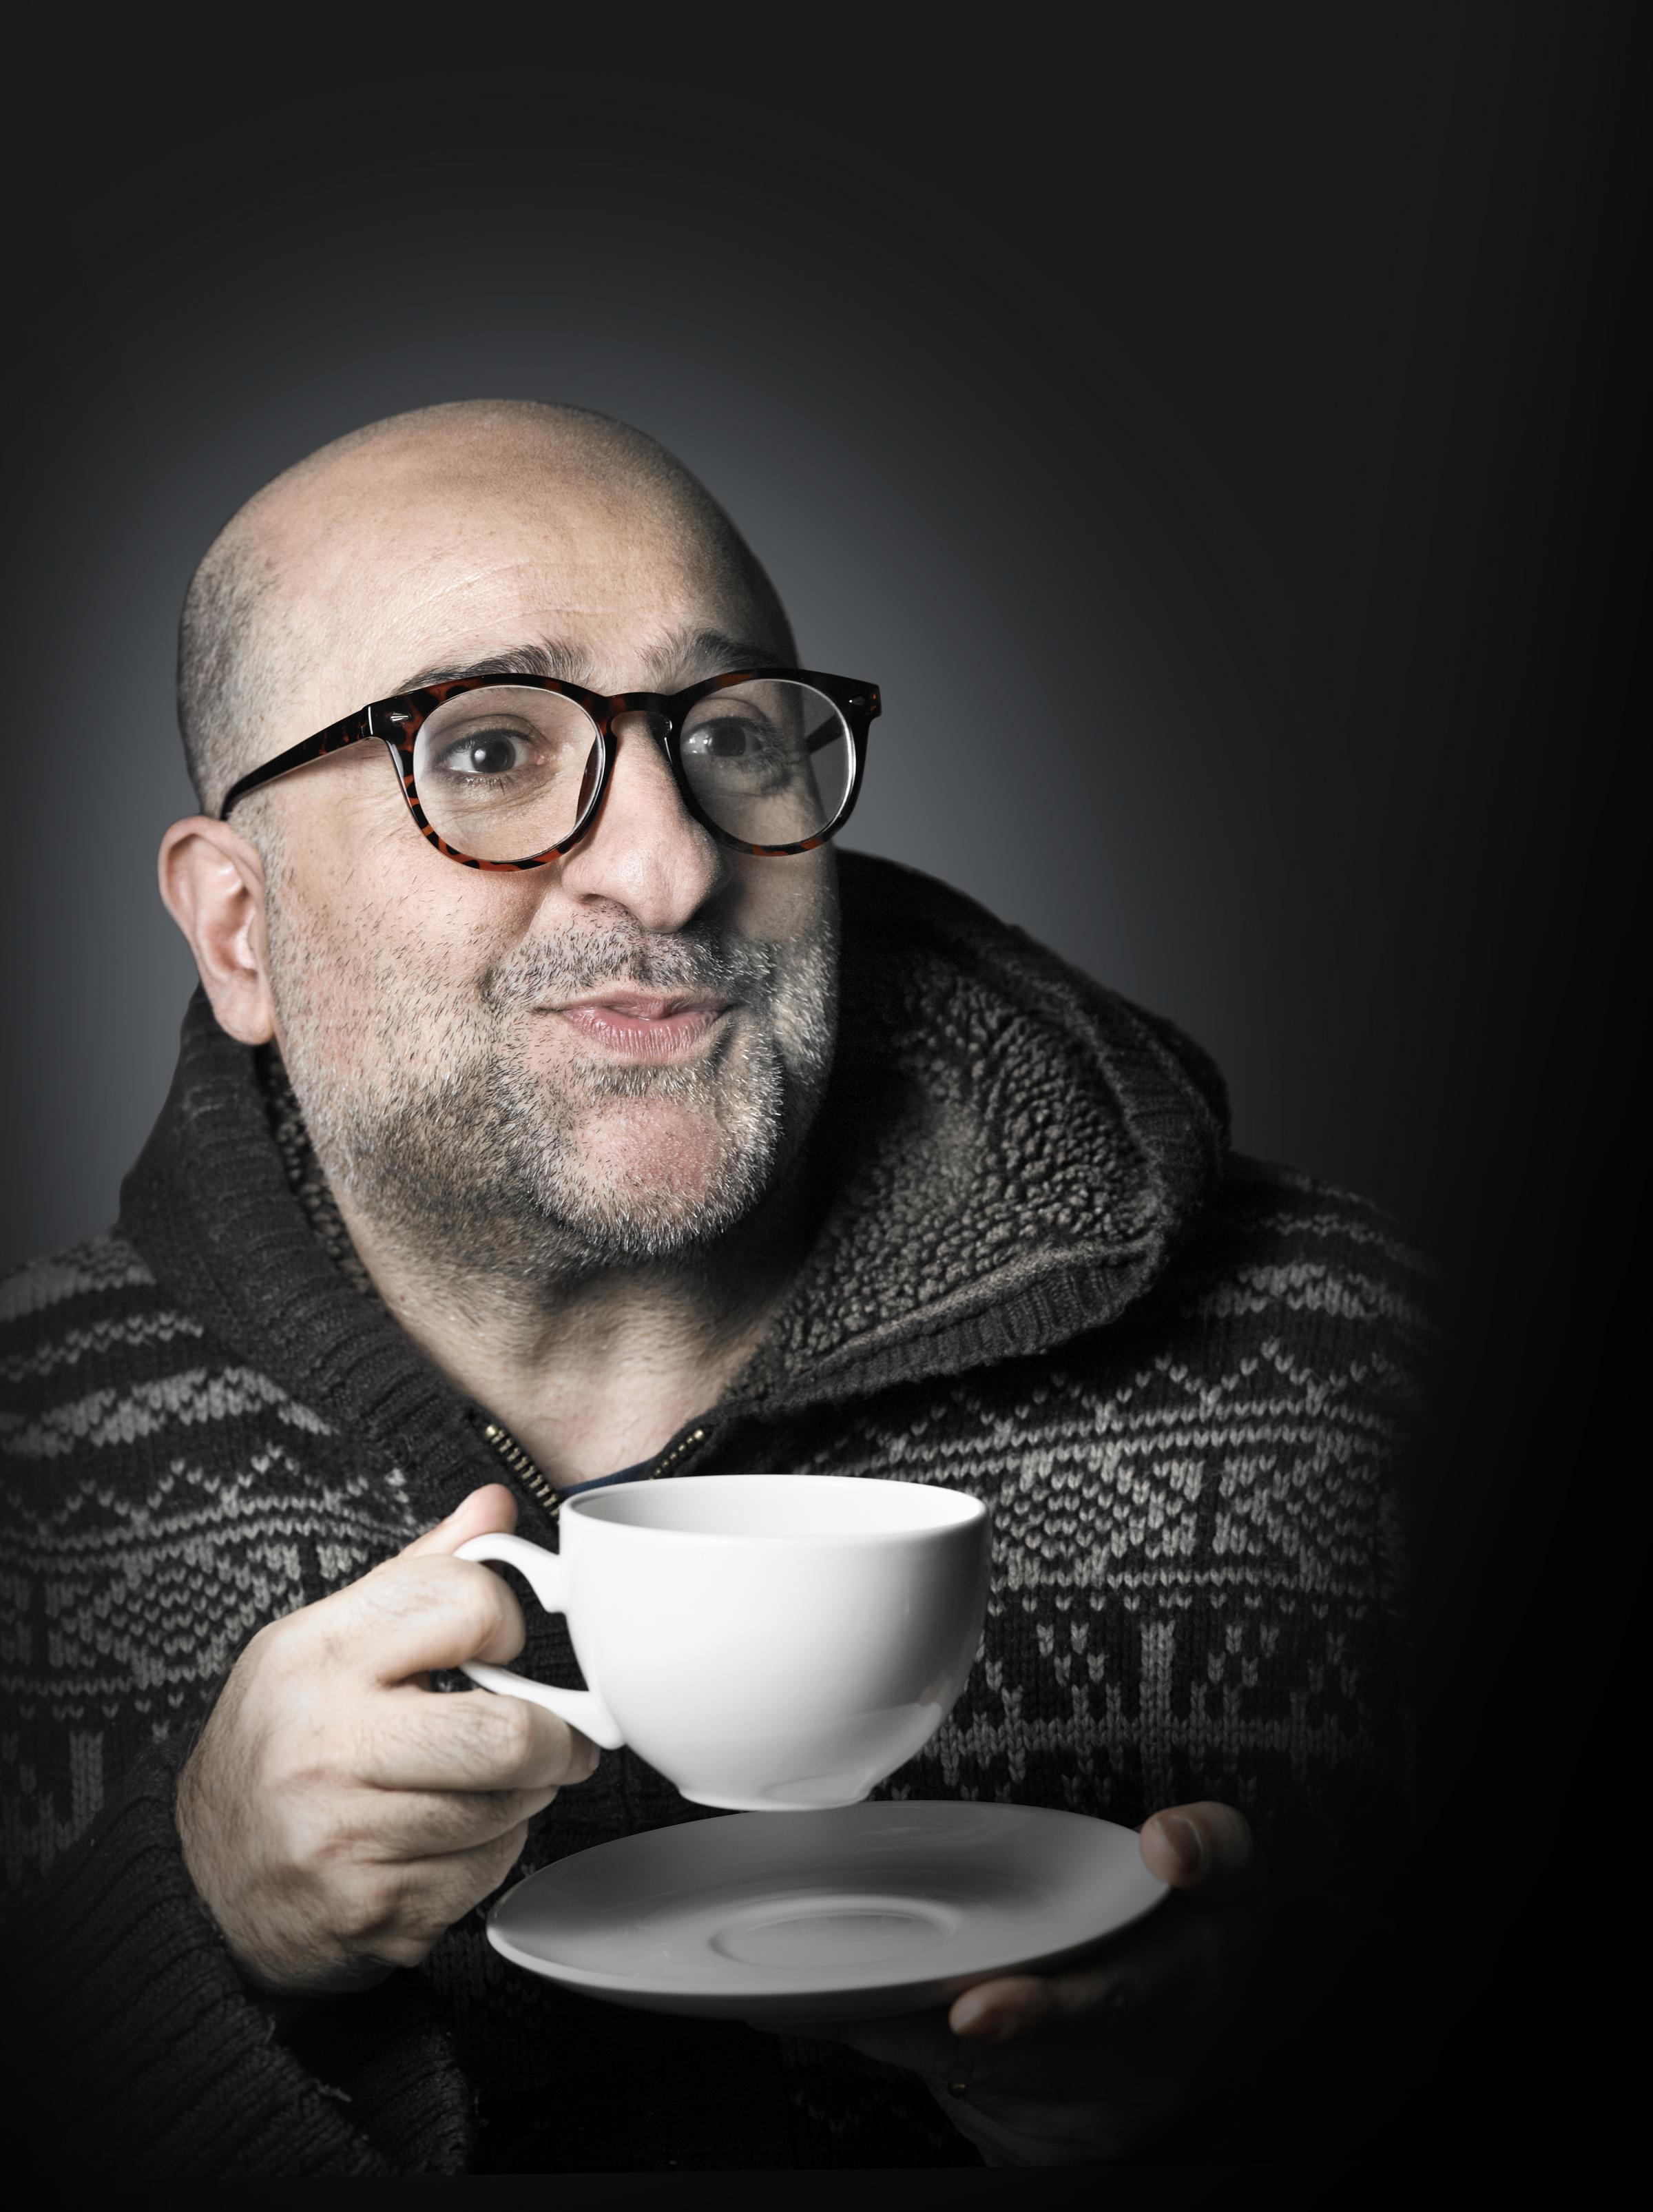 Omid consoles himself with a cuppa